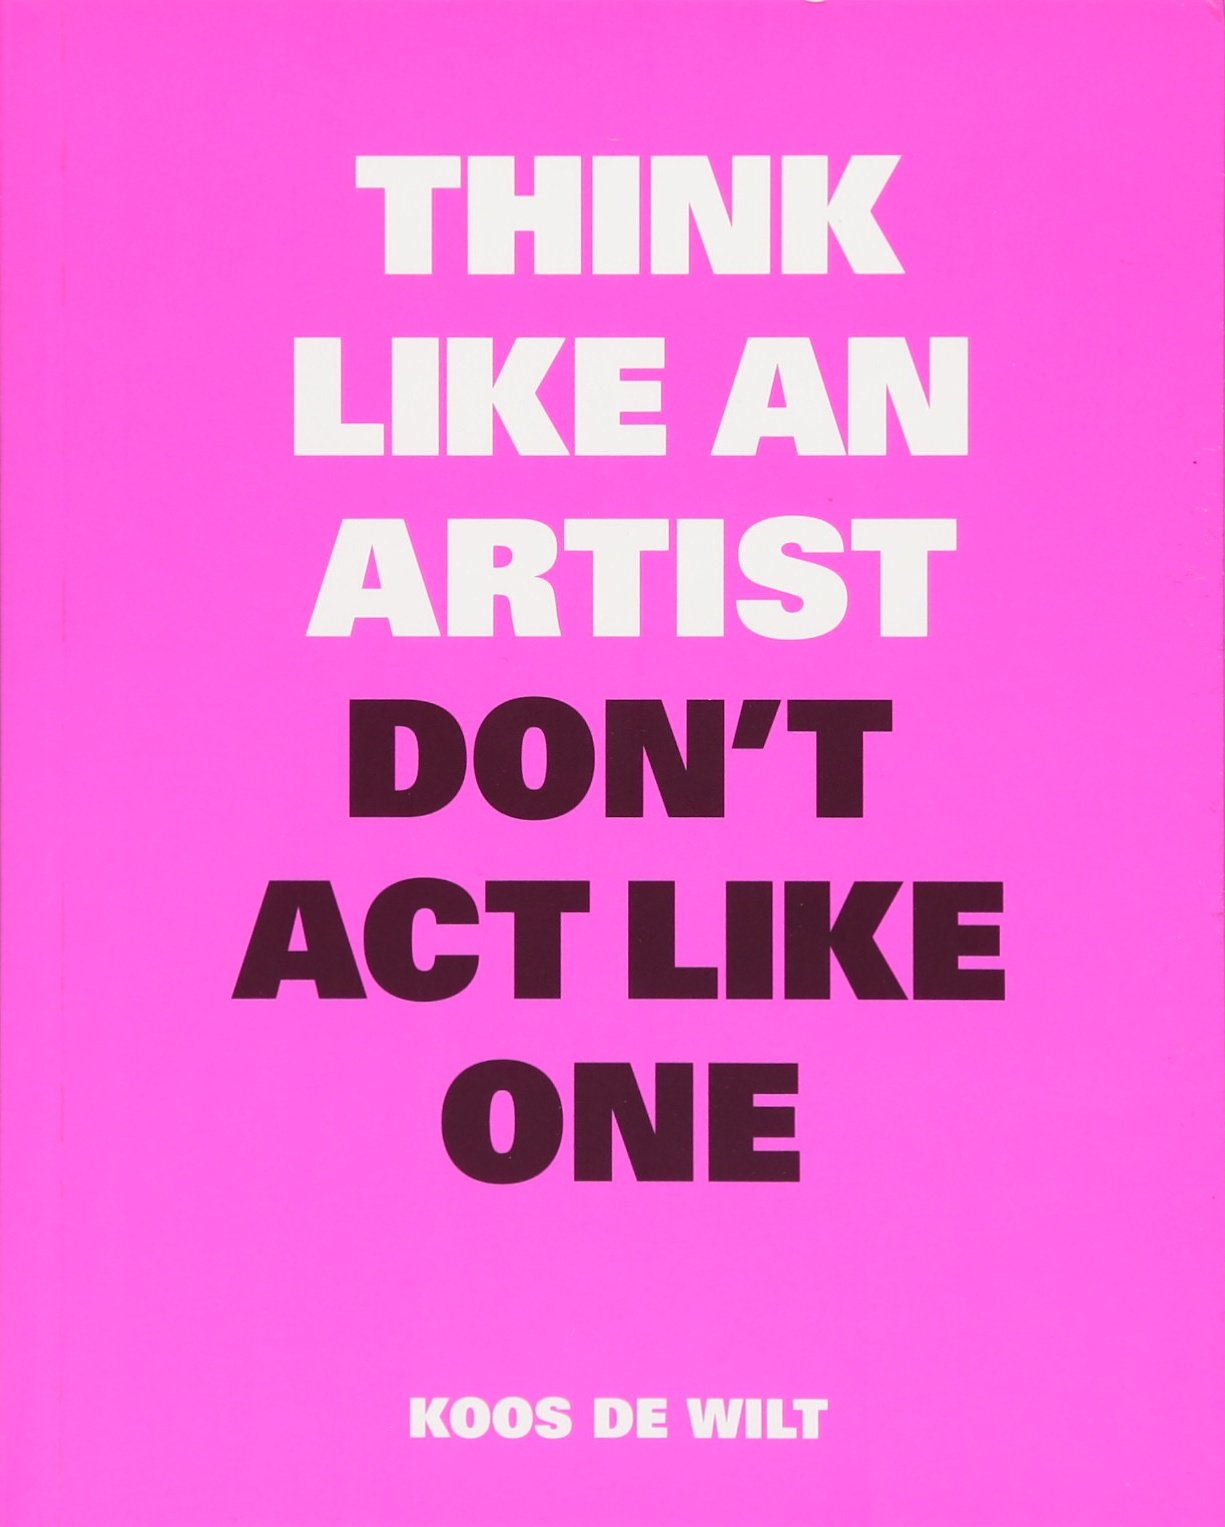 think-like-an-artist-don-t-act-like-one